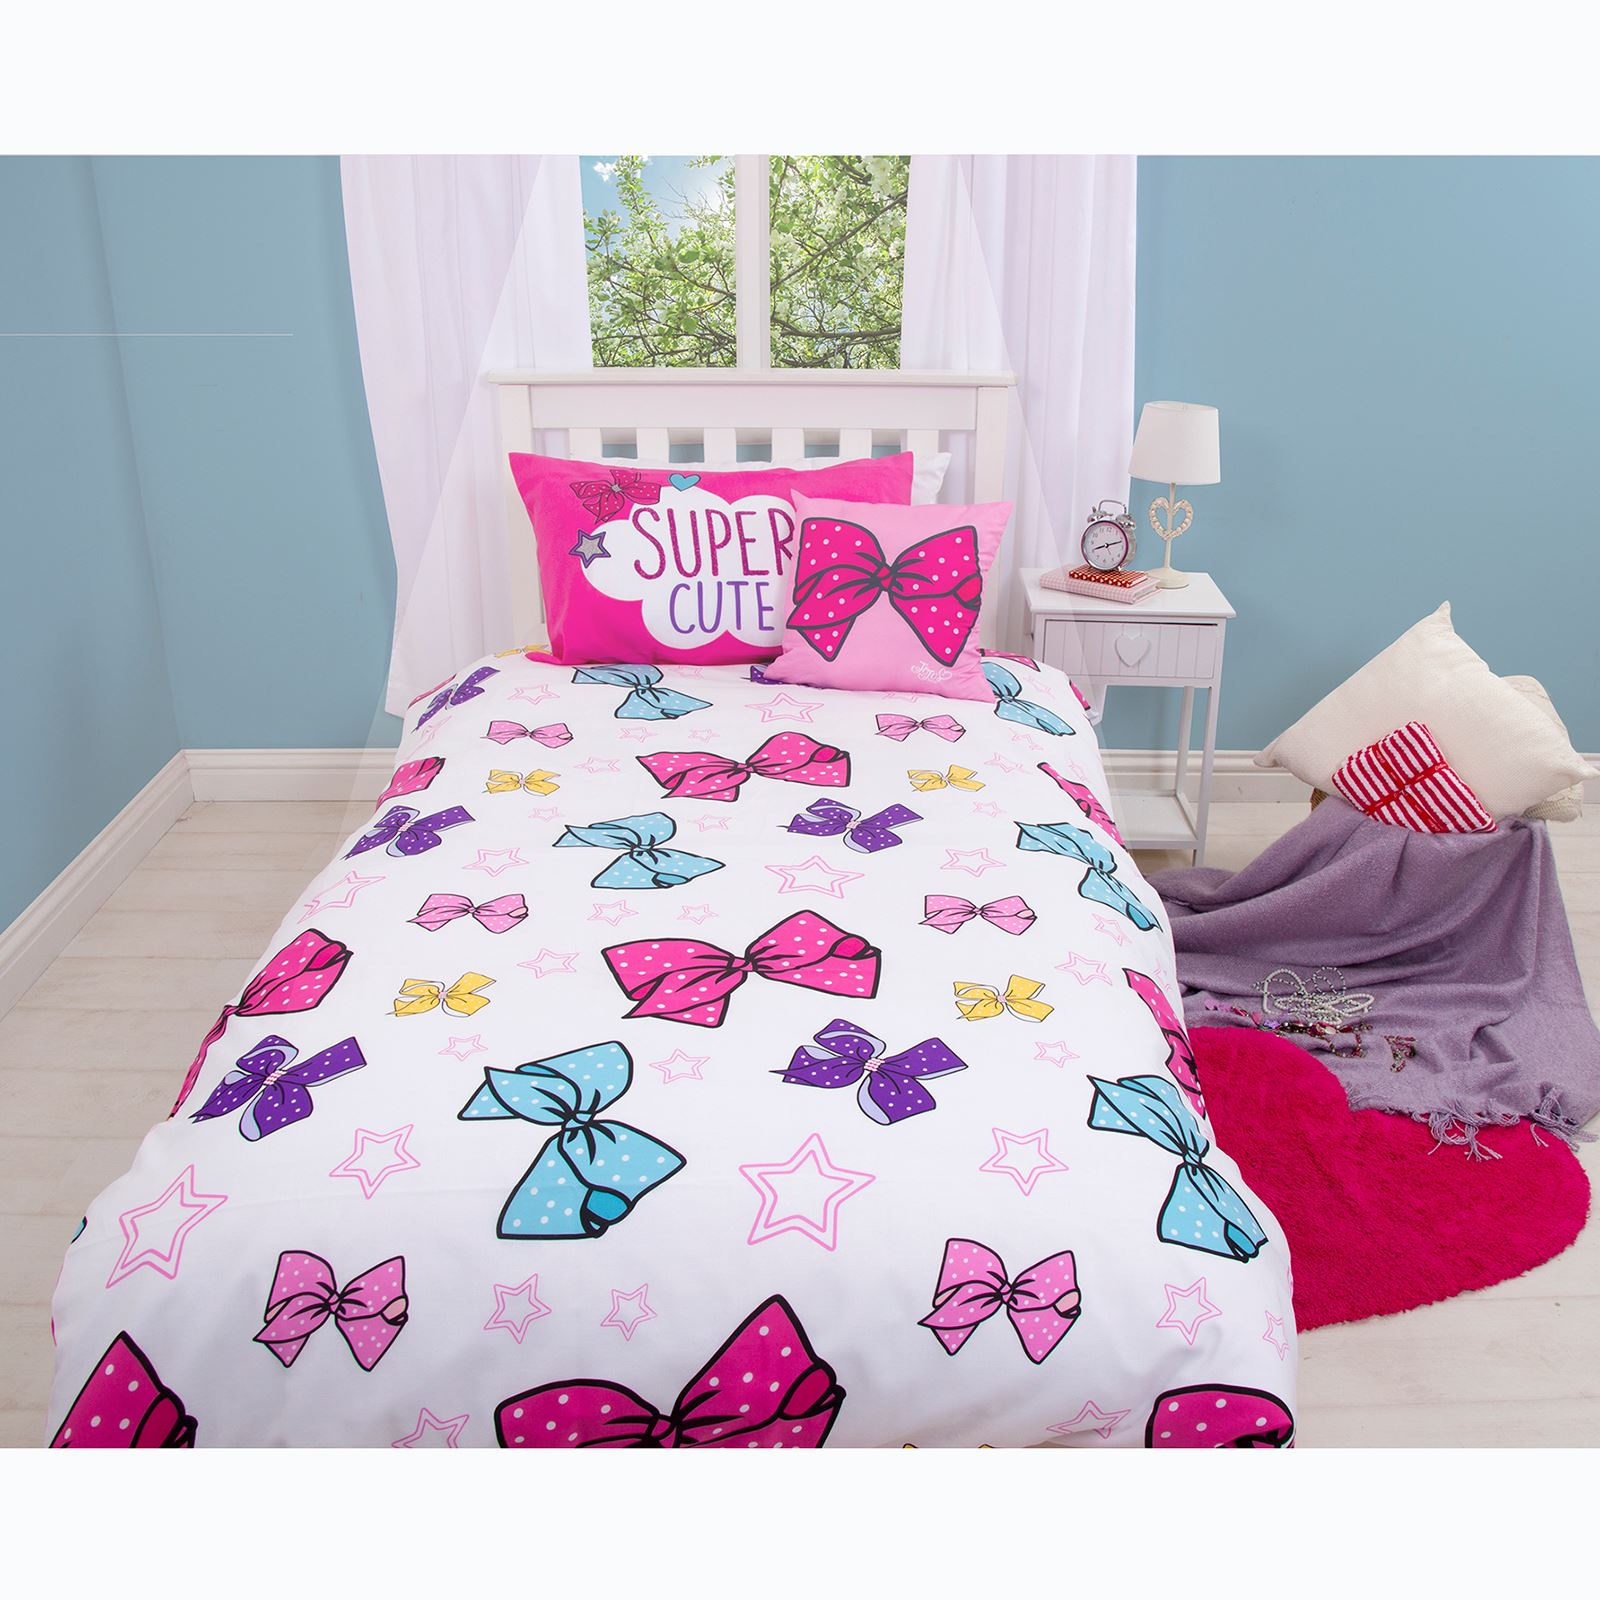 Wwe Bedroom Wallpaper Ebay